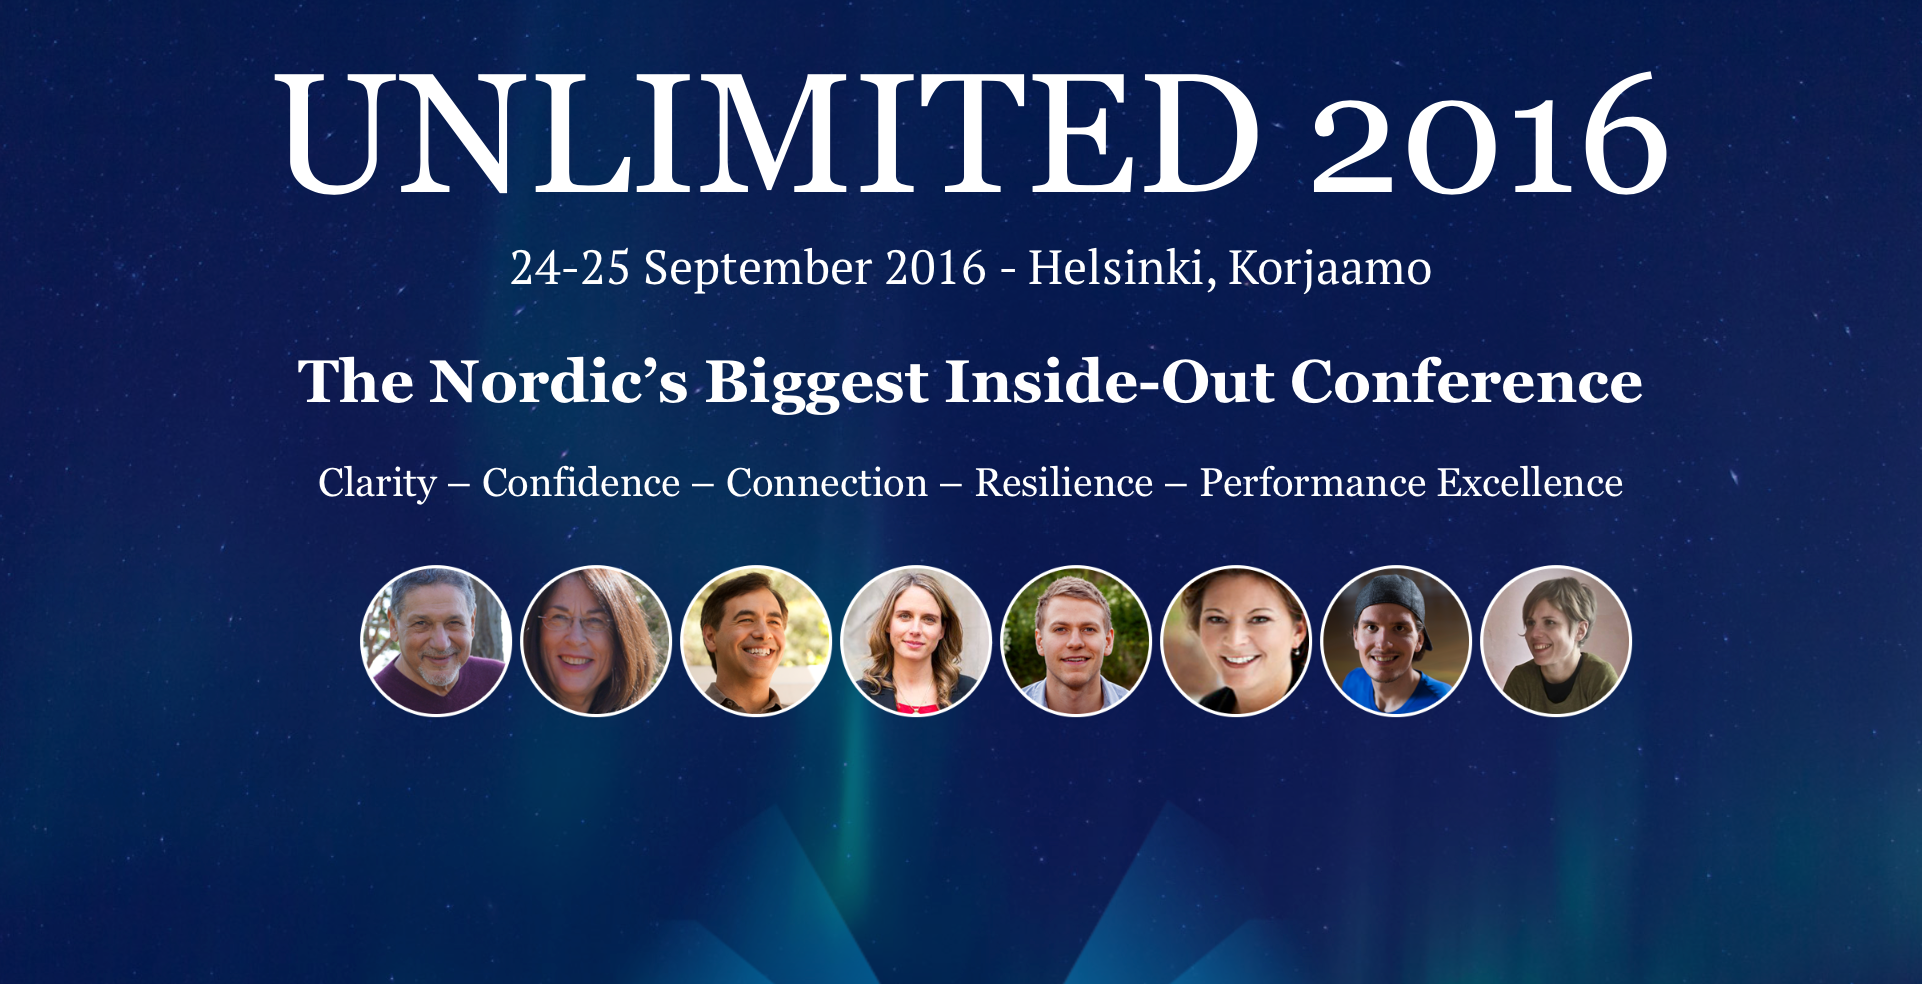 unlimited_2016_helsinki_-_unlimited-conference